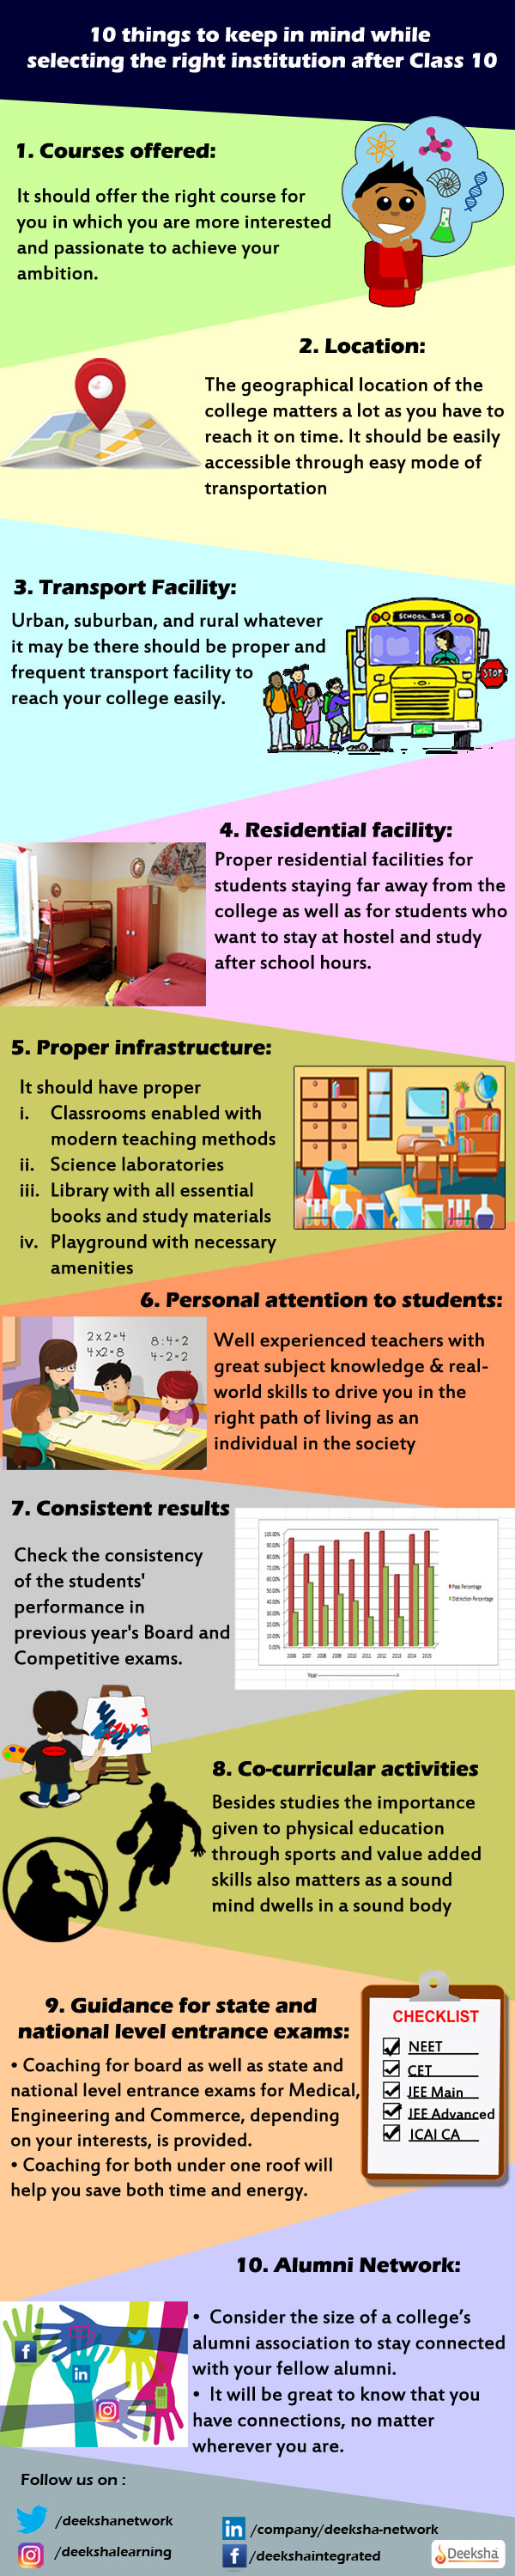 things-to-keep-in-mind-while-selecting-the-right-college-infographic-plaza